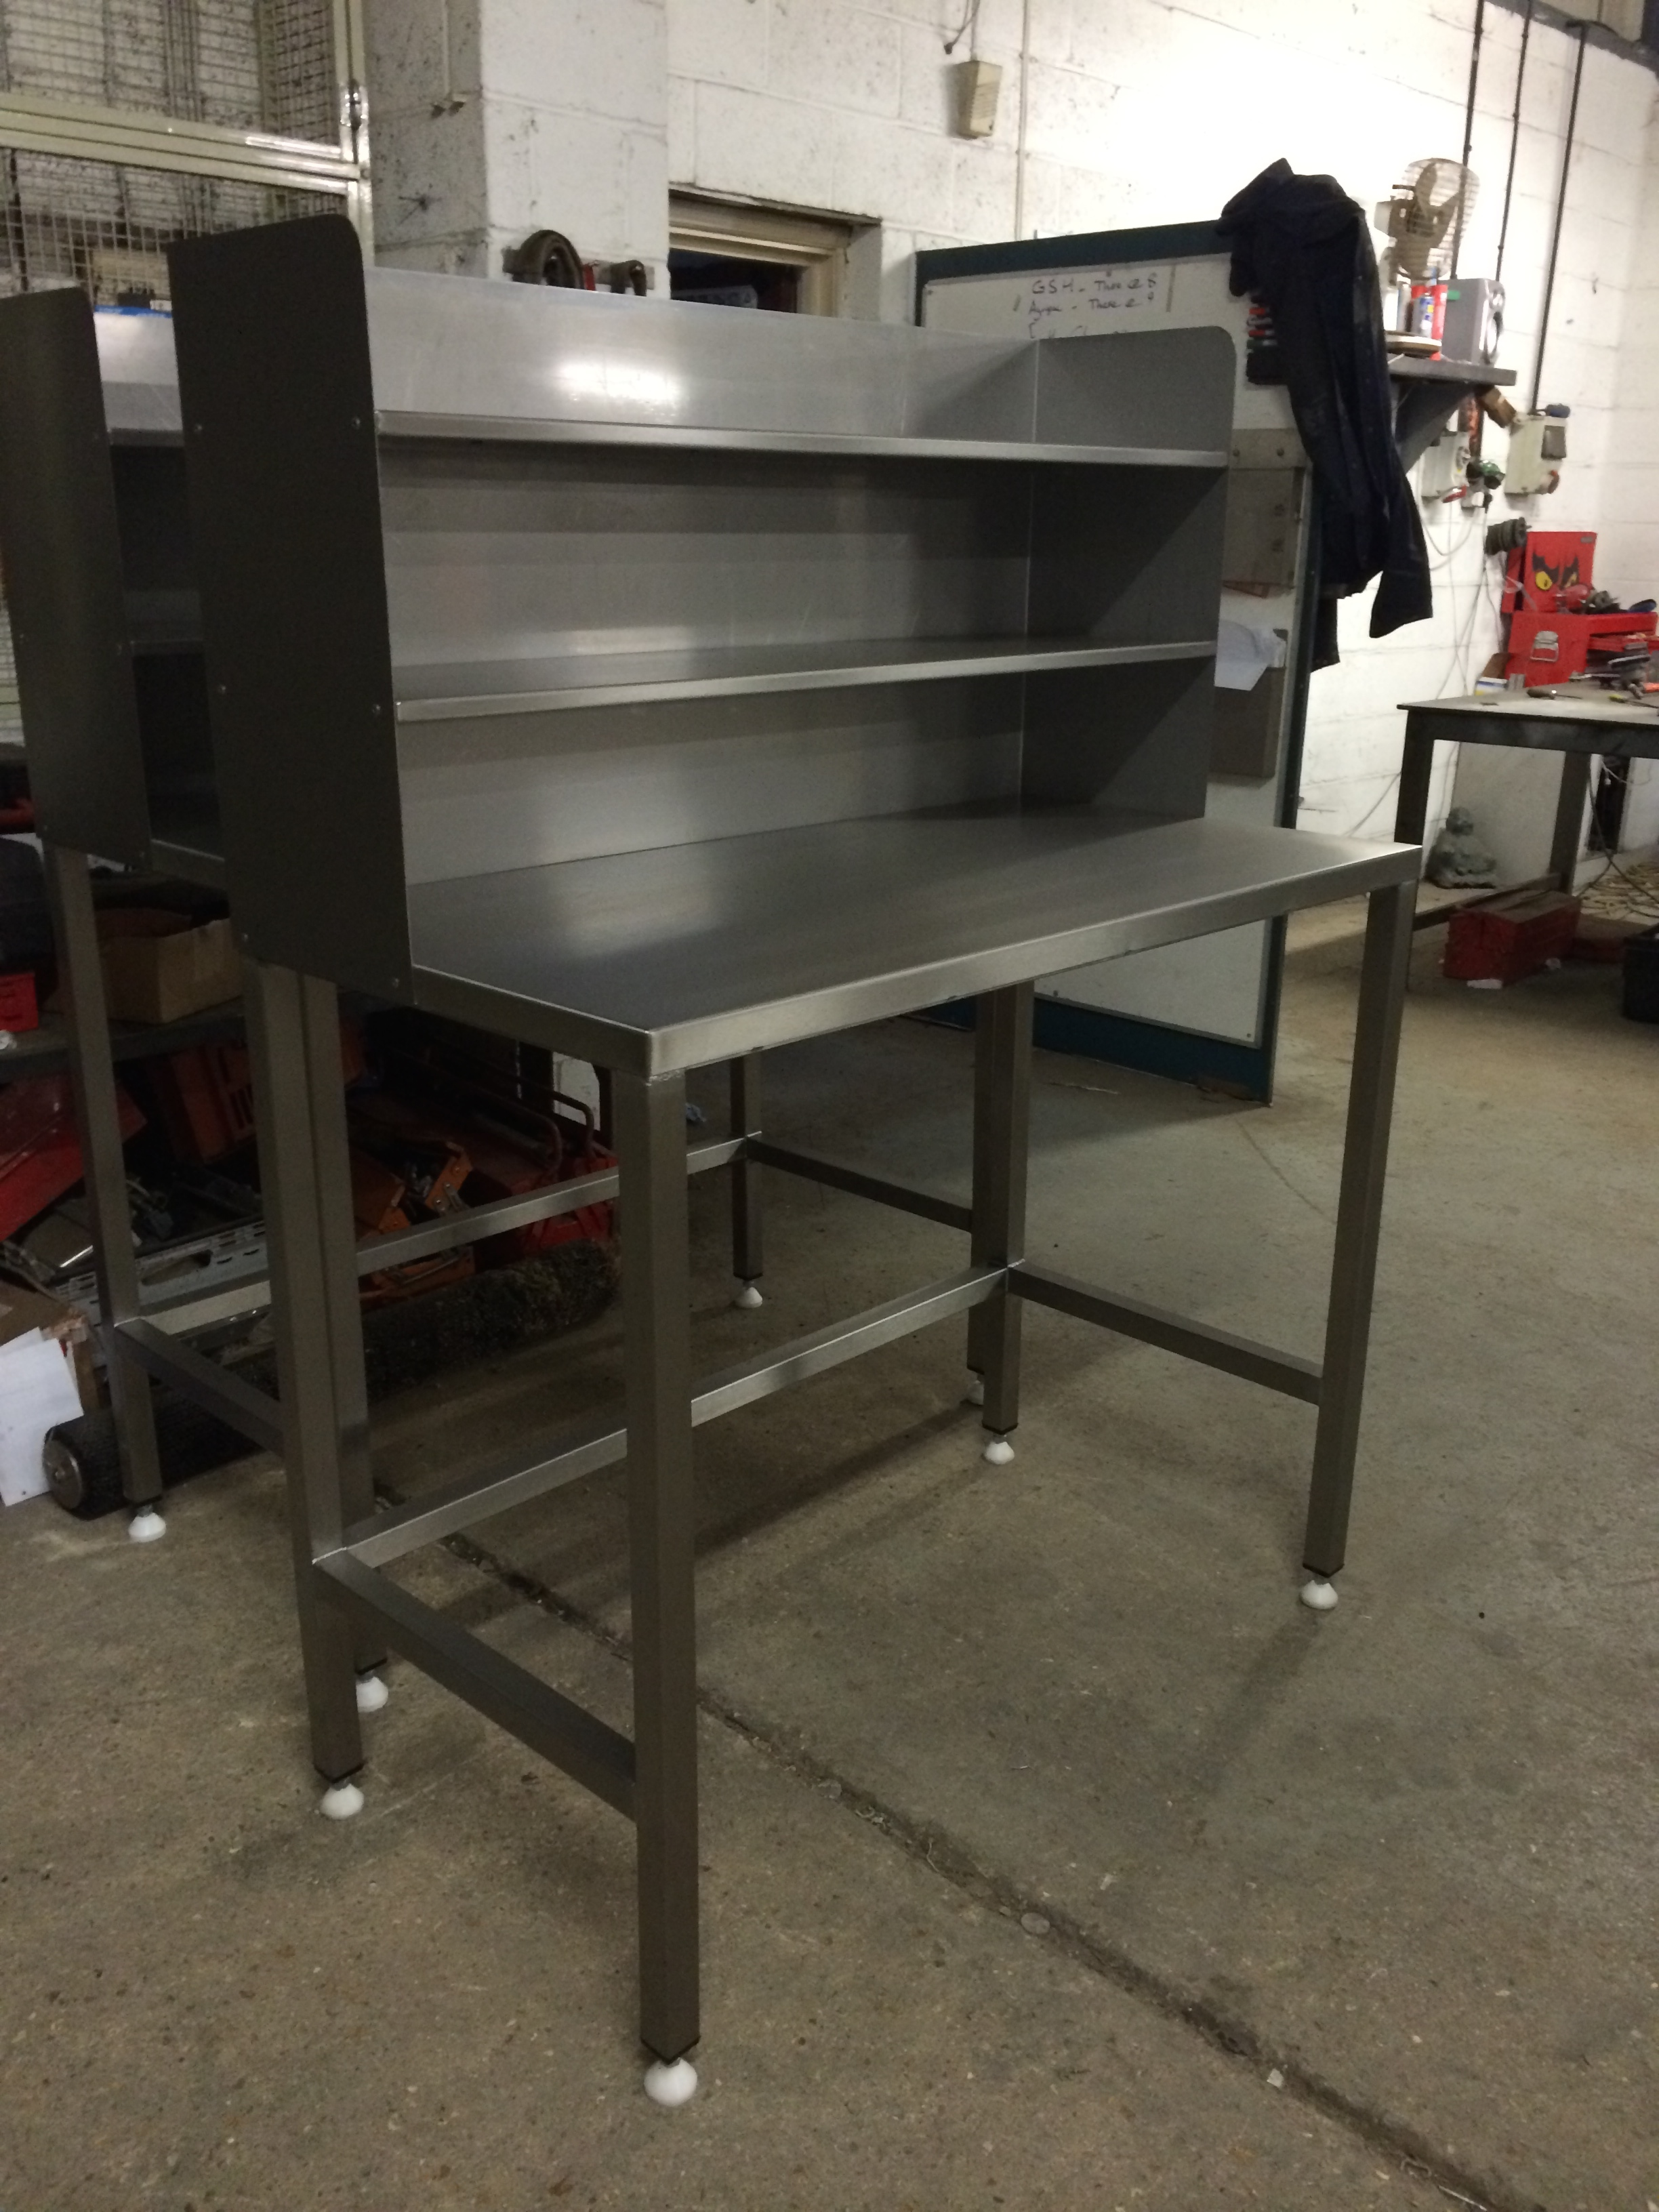 Stainless steel work stations